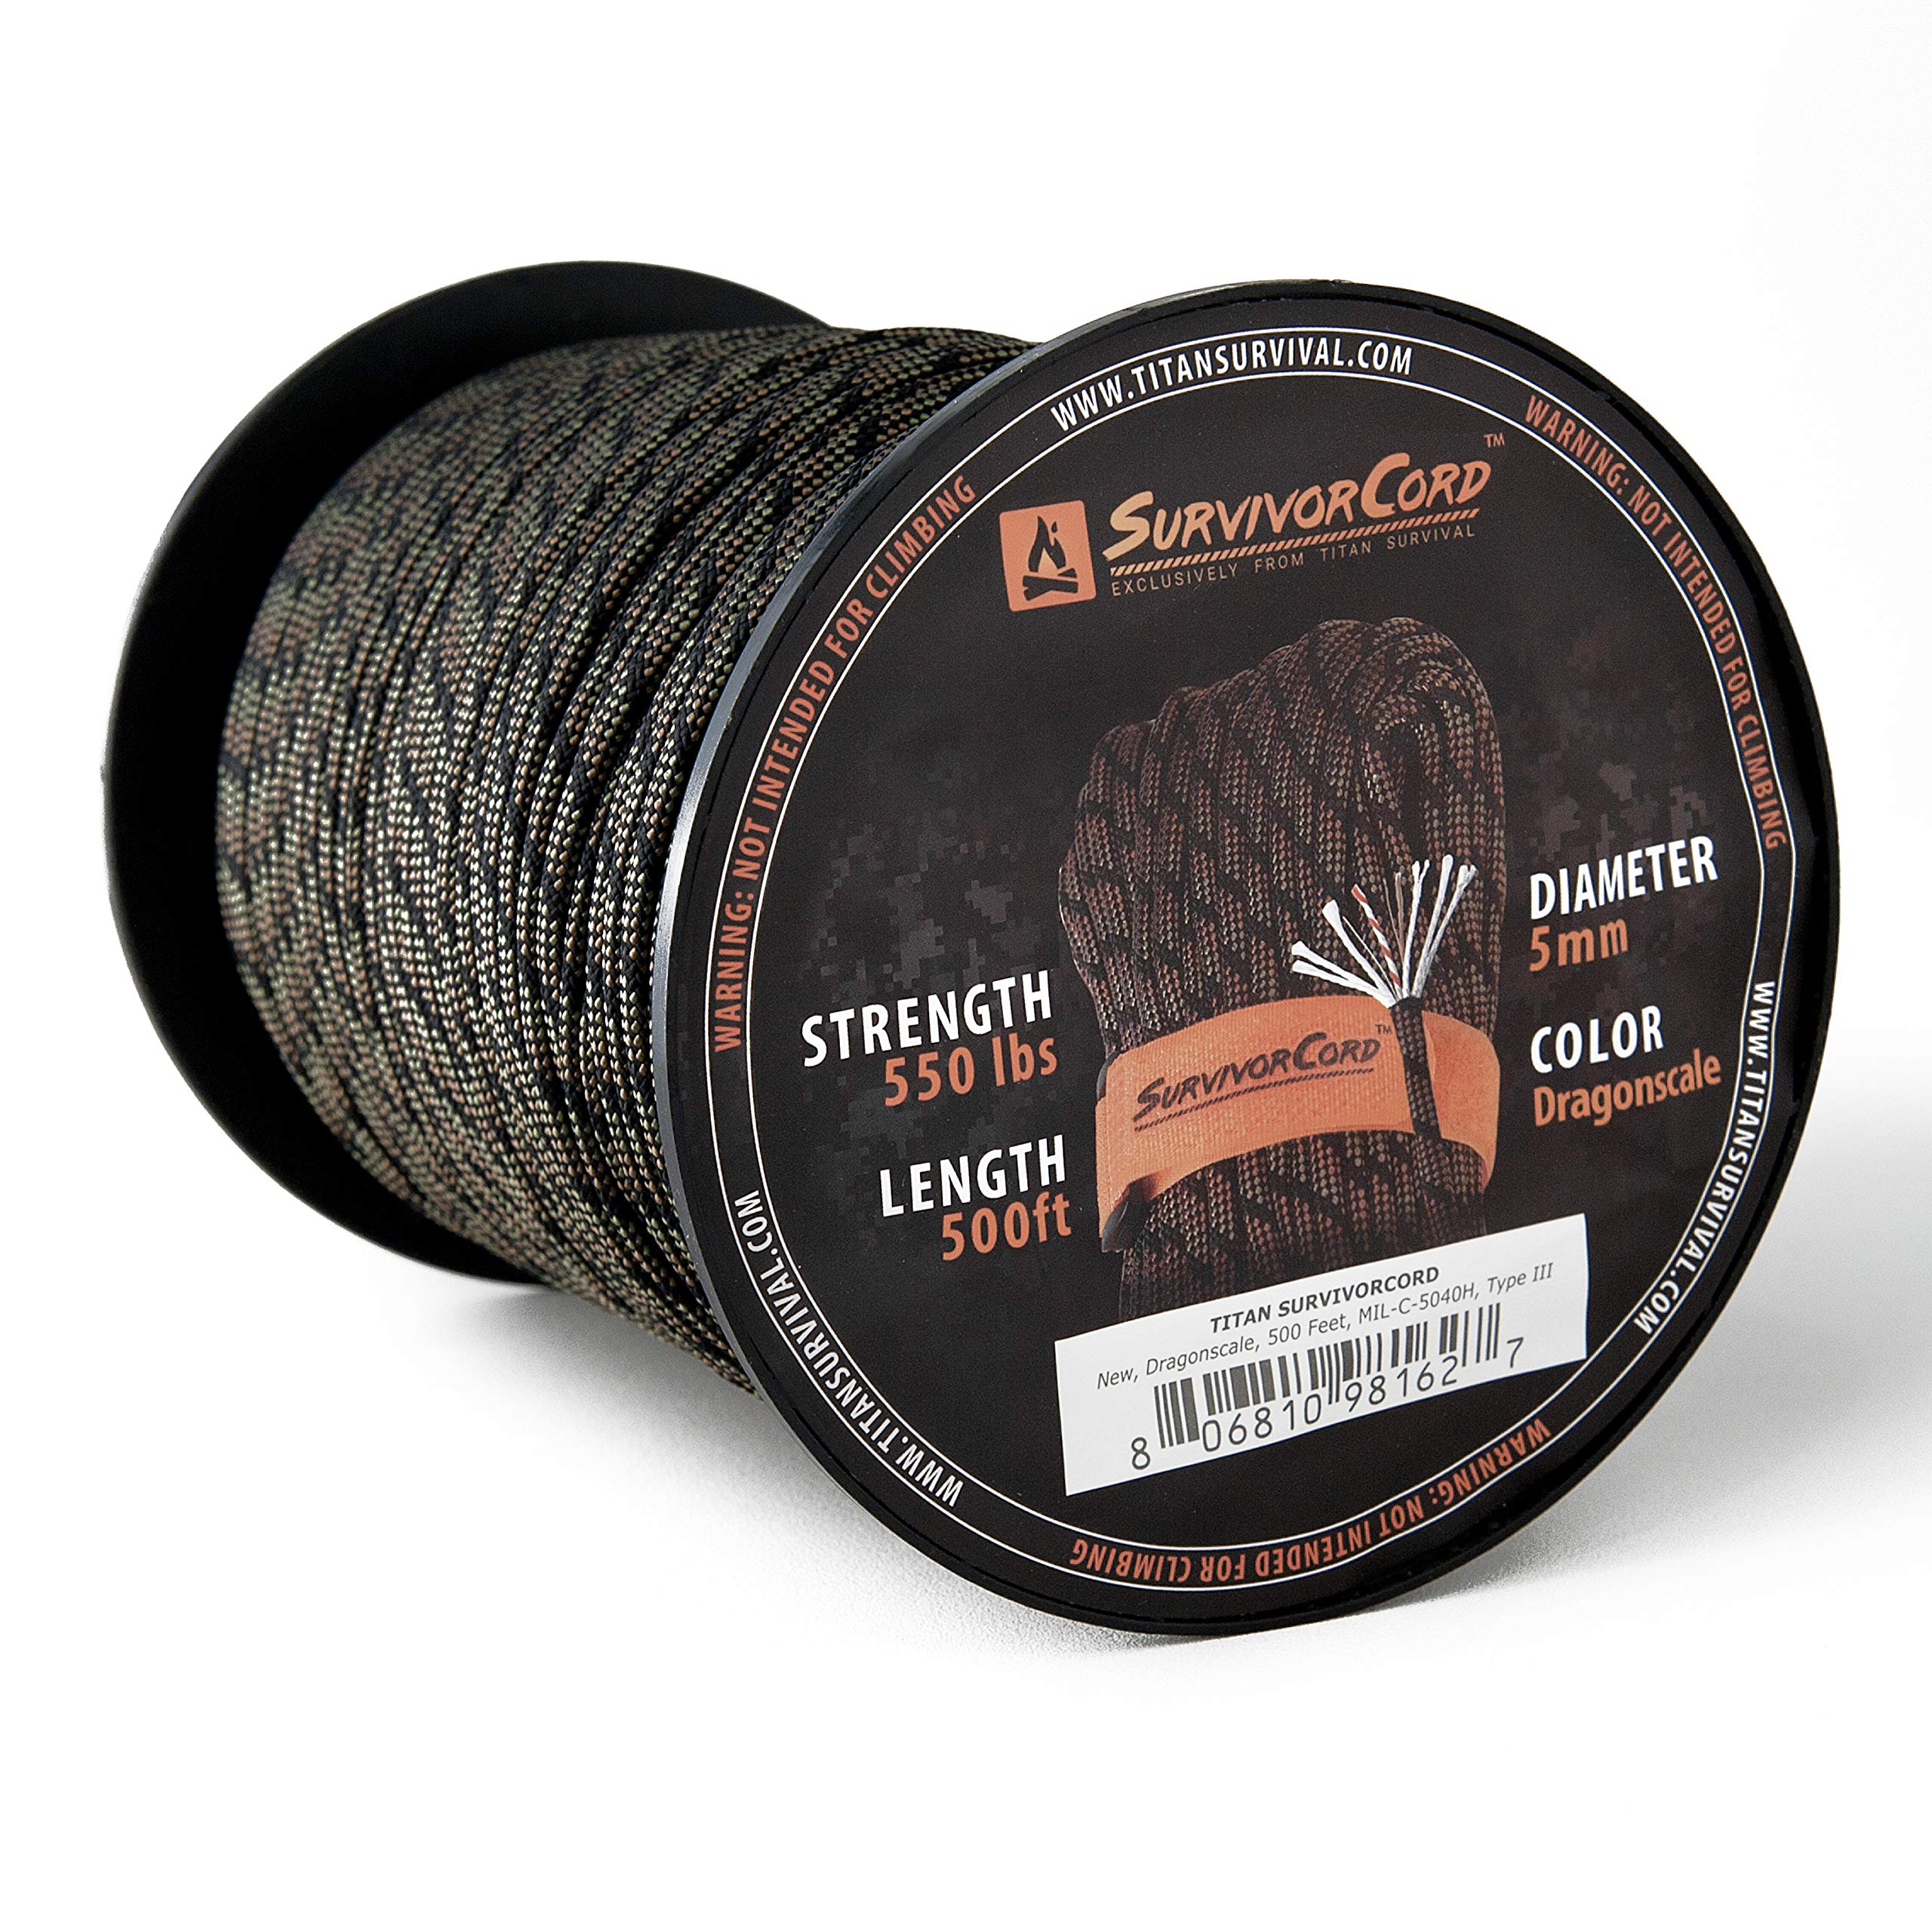 Titan SurvivorCord Spool | DRAGONSCALE, 500 FEET - Patented MIL-SPEC 550 Paracord (3/16'' Diameter) with Integrated Fishing Line, Fire-Starter, and Utility Wire. Free Paracord Project eBooks Included. by Titan Paracord